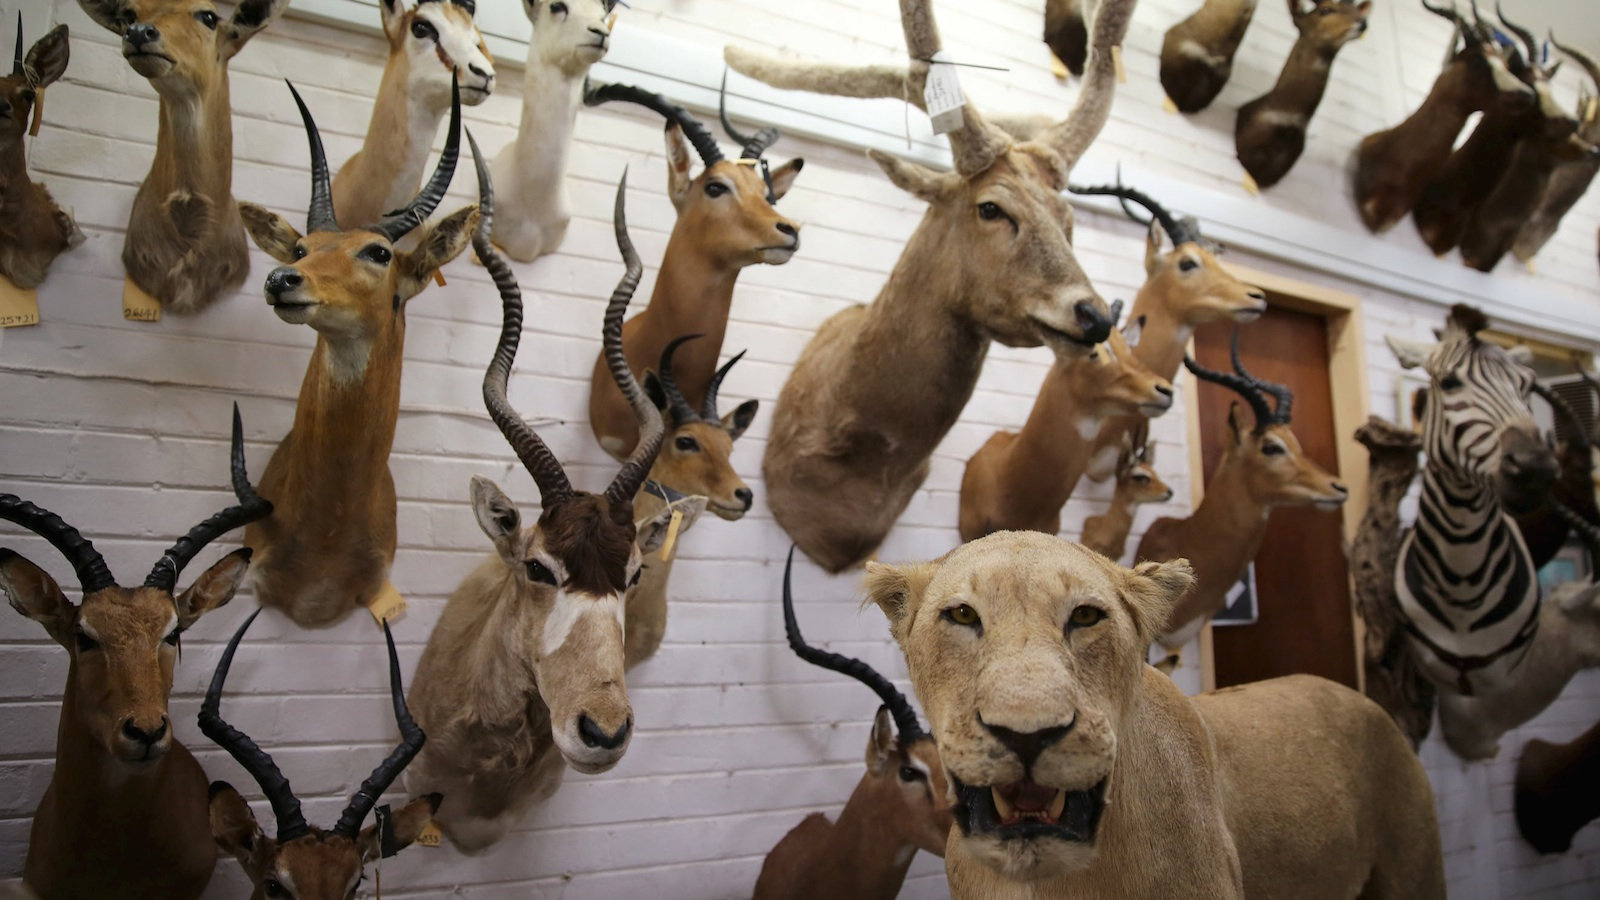 Animal trophies are seen at the entrance of a taxidermy studio in Pretoria, South Africa.